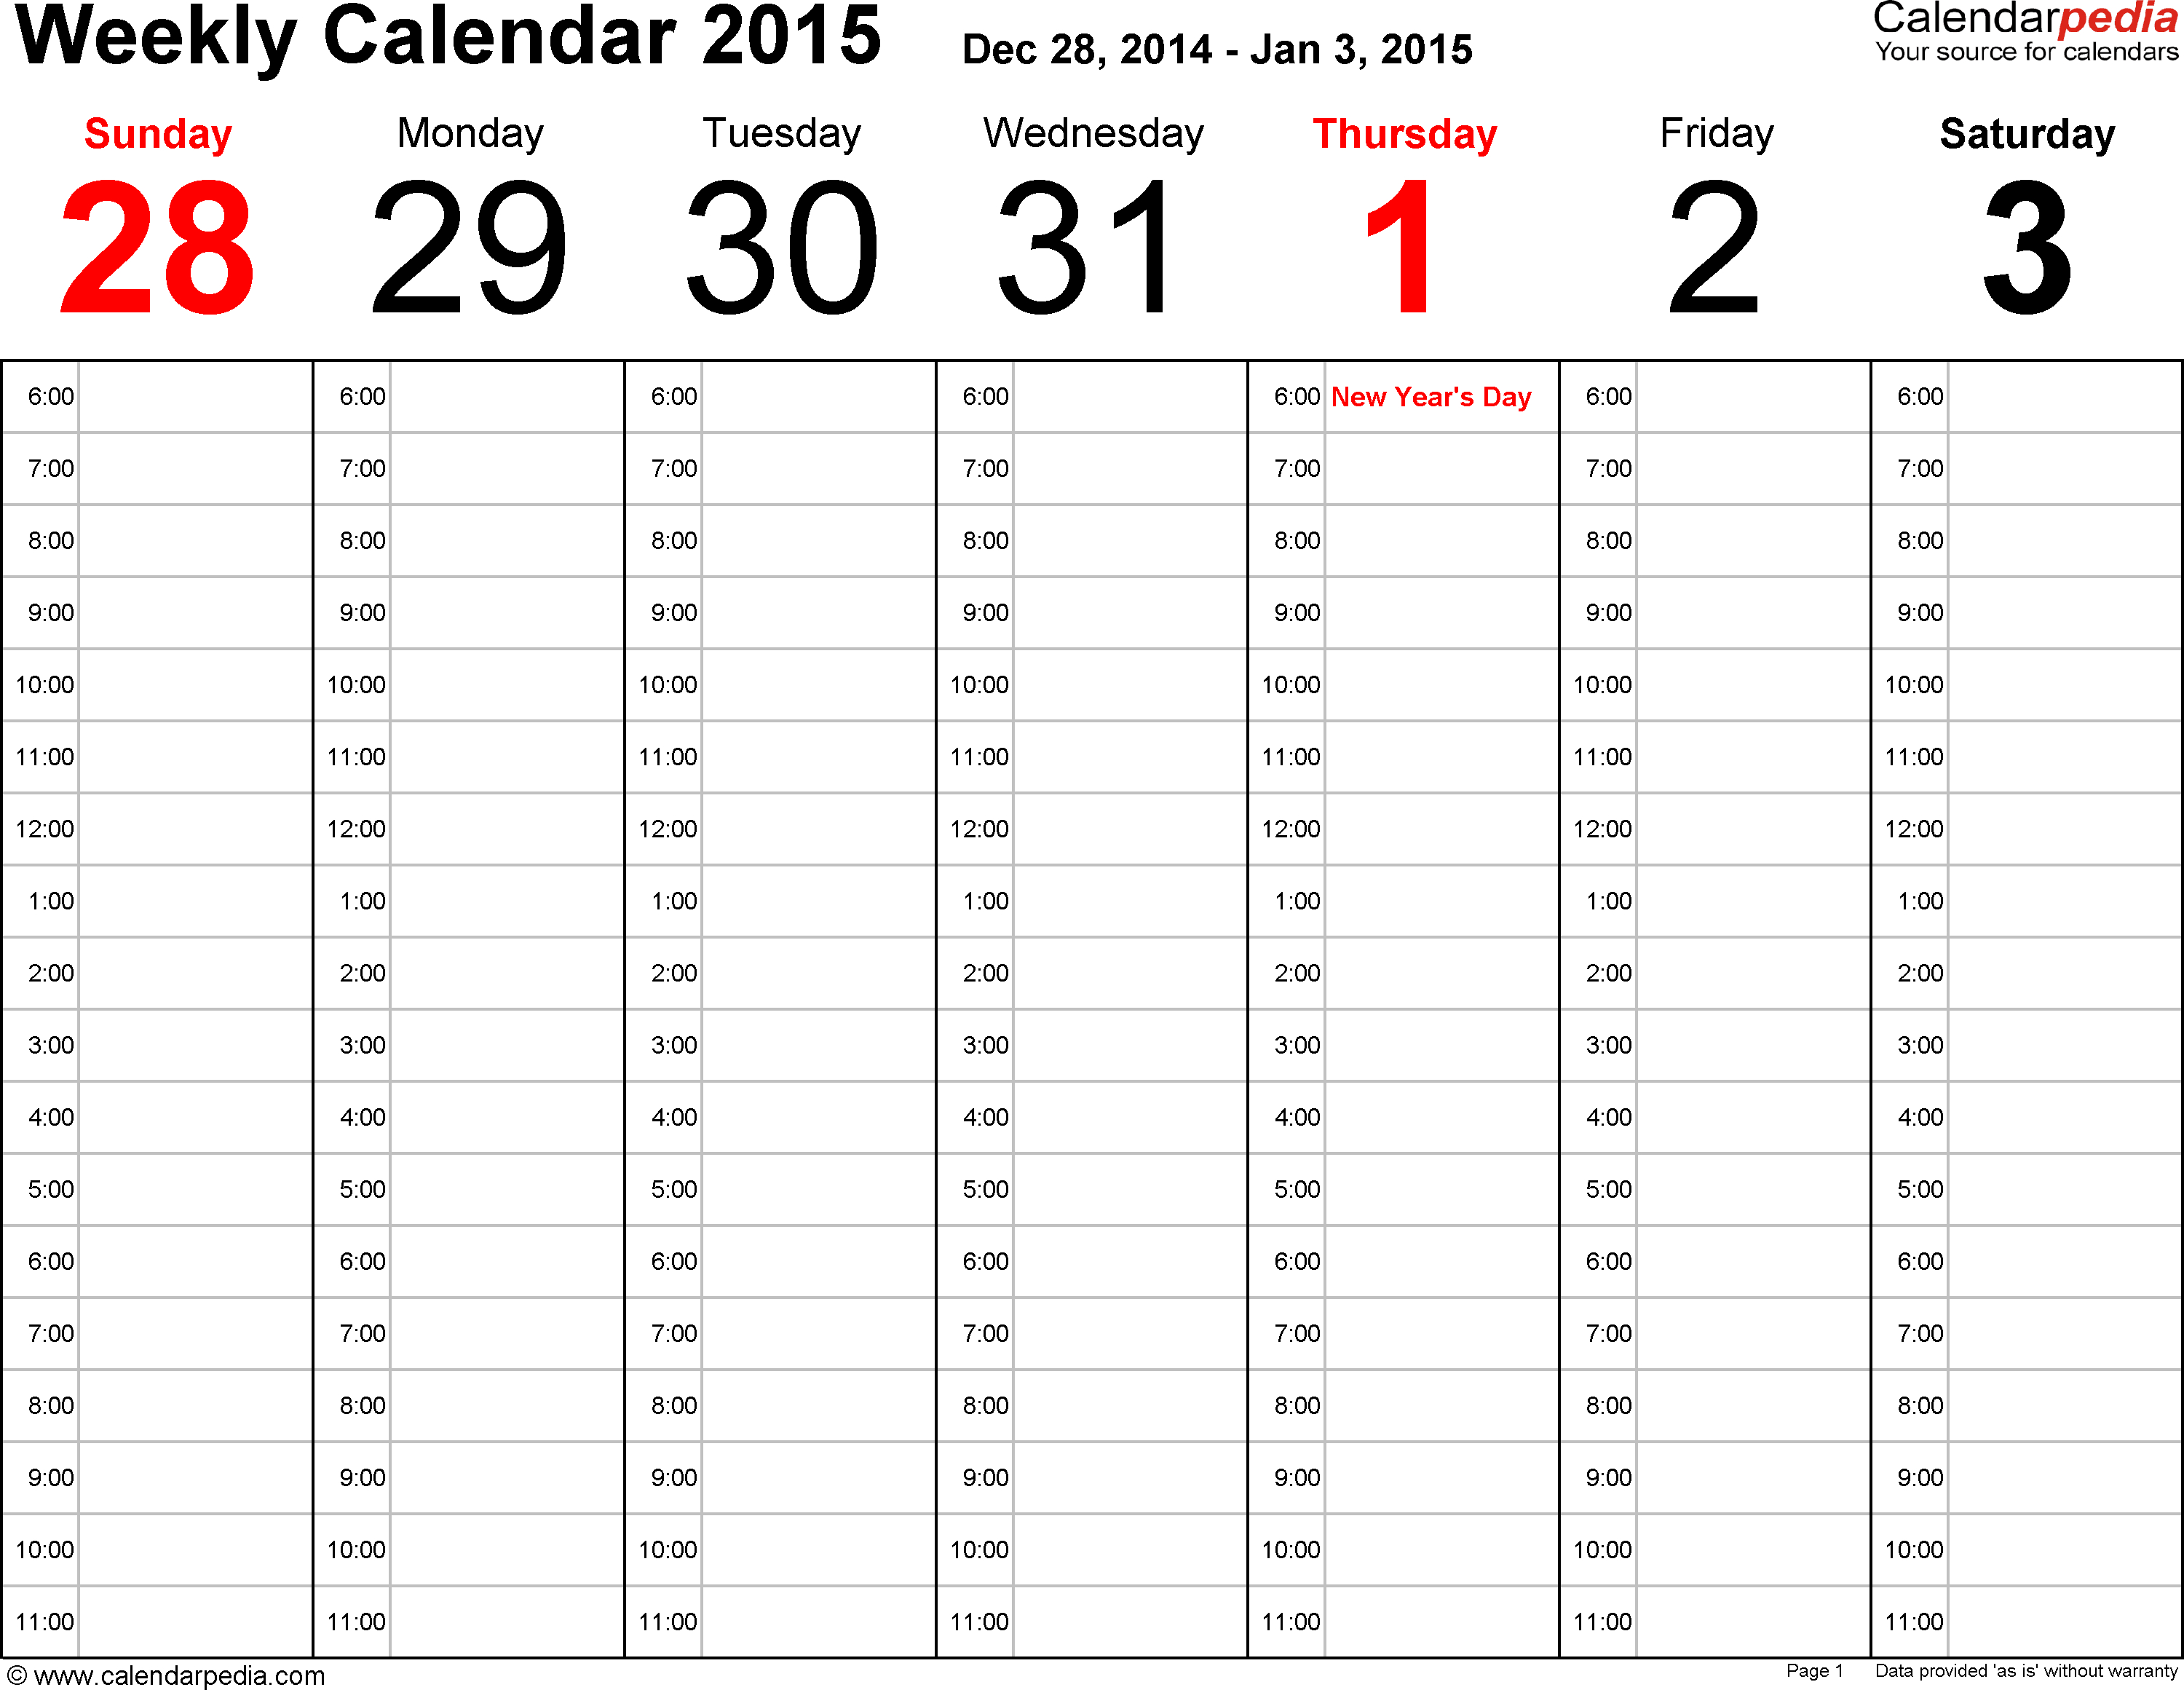 Calendarpedia  Free Printable, Fillable Calendar Templates within Calendarpedia Weekly Schedule